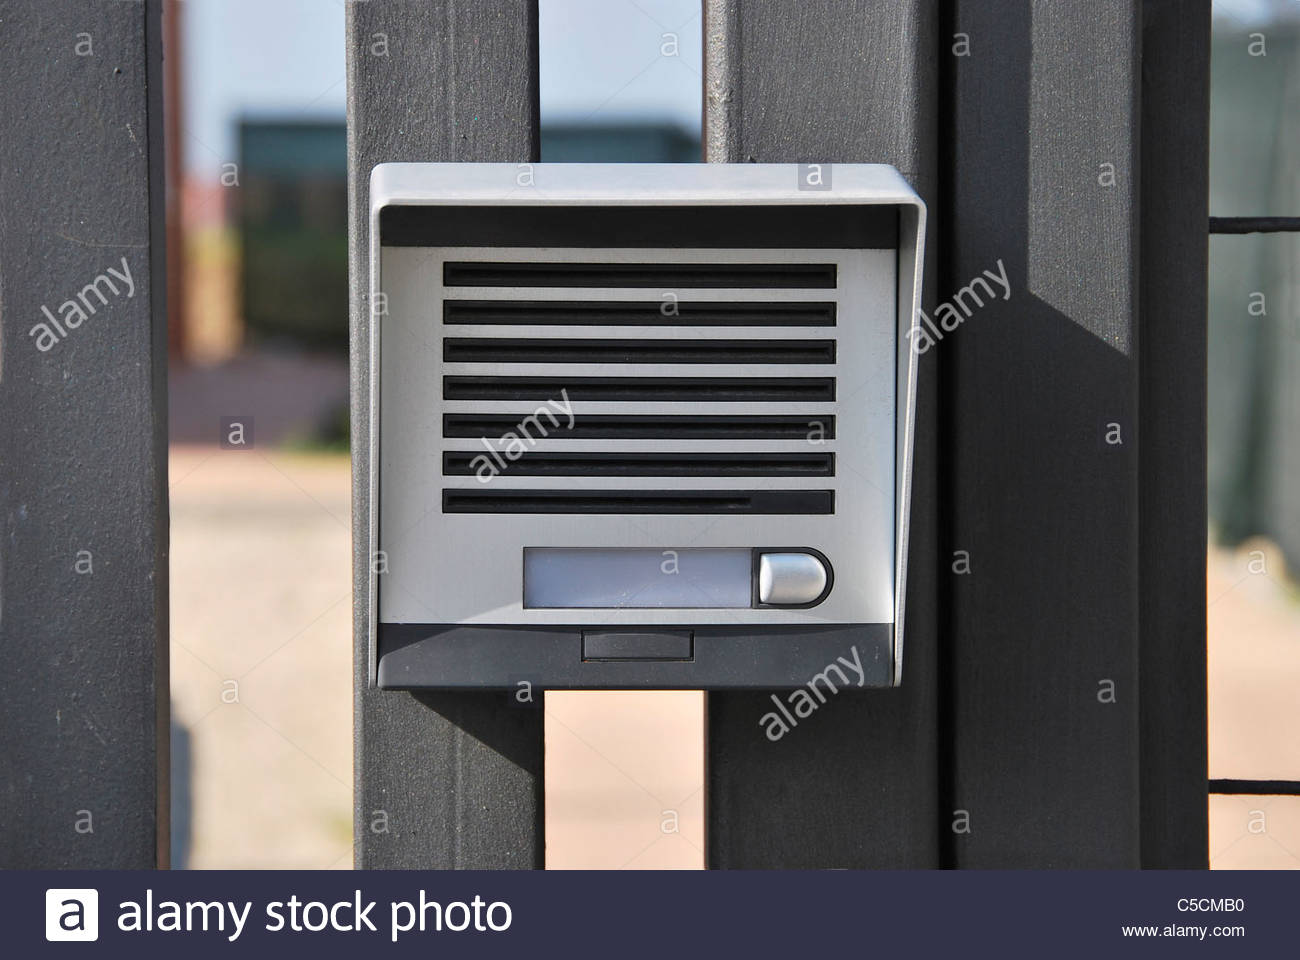 Intercommunication Stock Photos Images Intercom Circuit Electronic Device For Security System Image